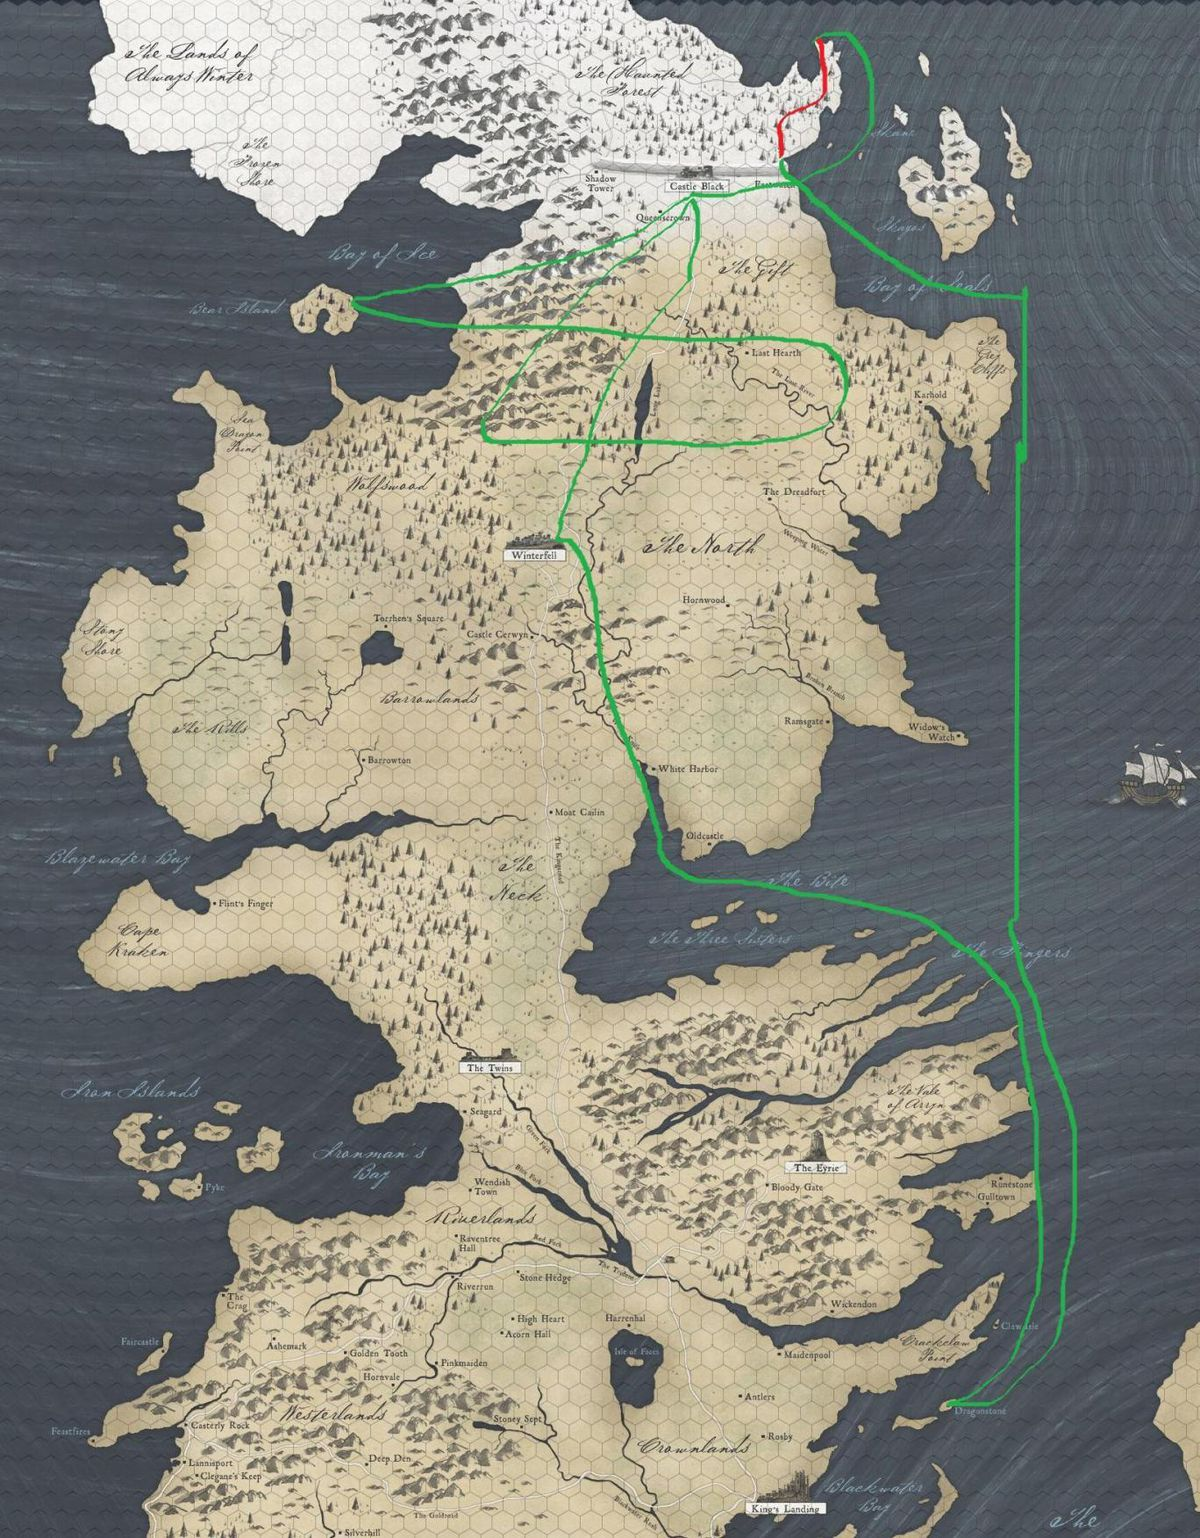 Game of Thrones' main problem this season can be explained ... Game Of Thrones Complete Map on skyrim complete map, assassin's creed unity complete map, risk game map, walking dead map, house of strahd poster map, rift game map, grand theft auto v complete map, king's landing 3d map, naruto complete map, king of thorns map, defiance complete map, the crew complete map, united states complete map, world map, king of thrones map,